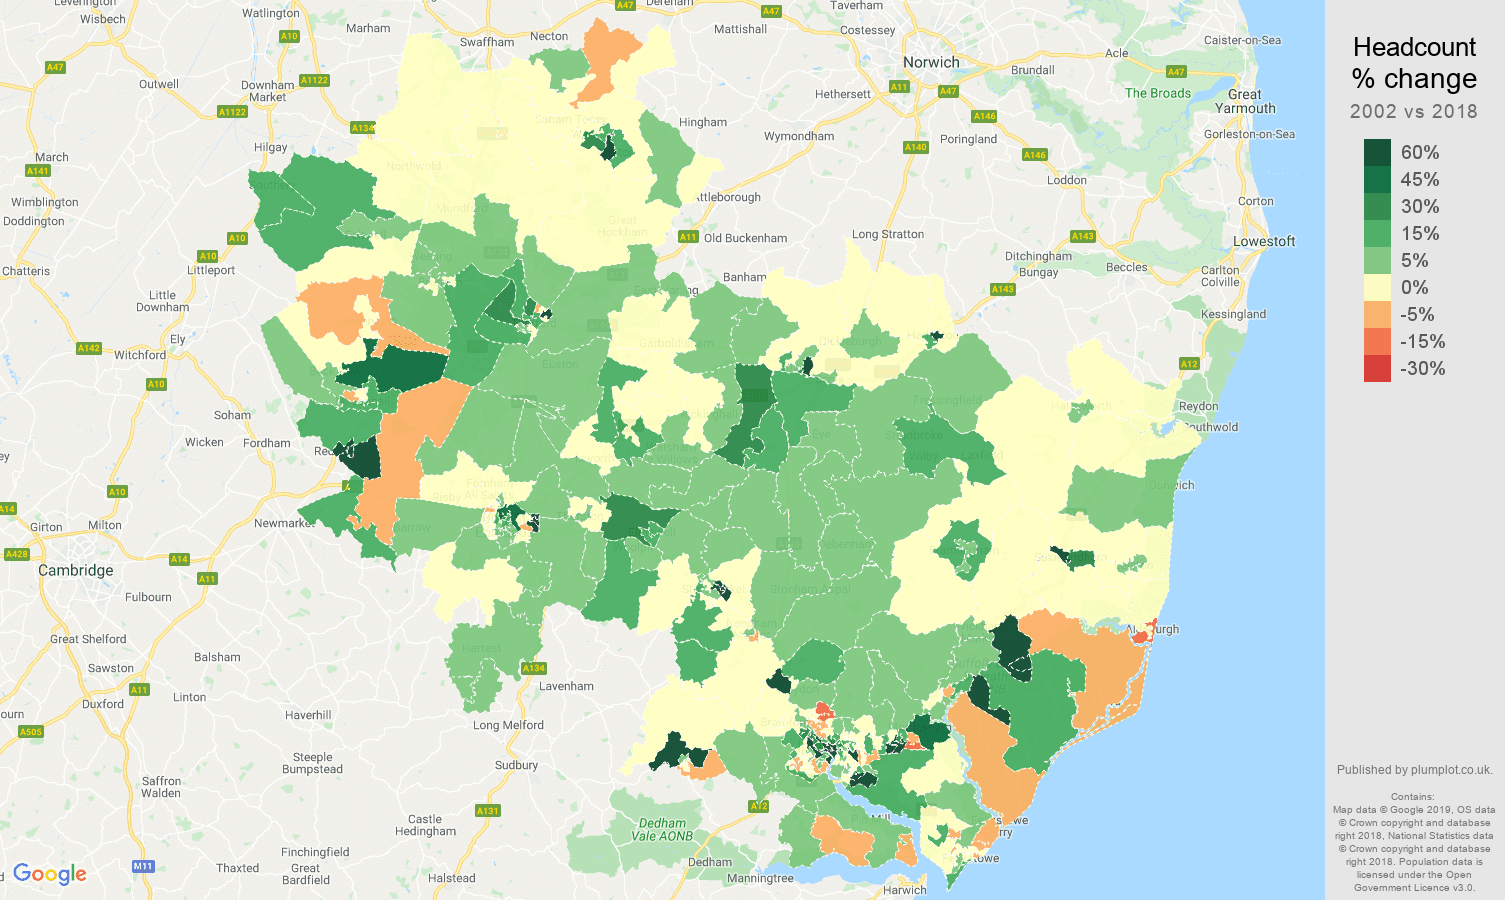 Ipswich headcount change map